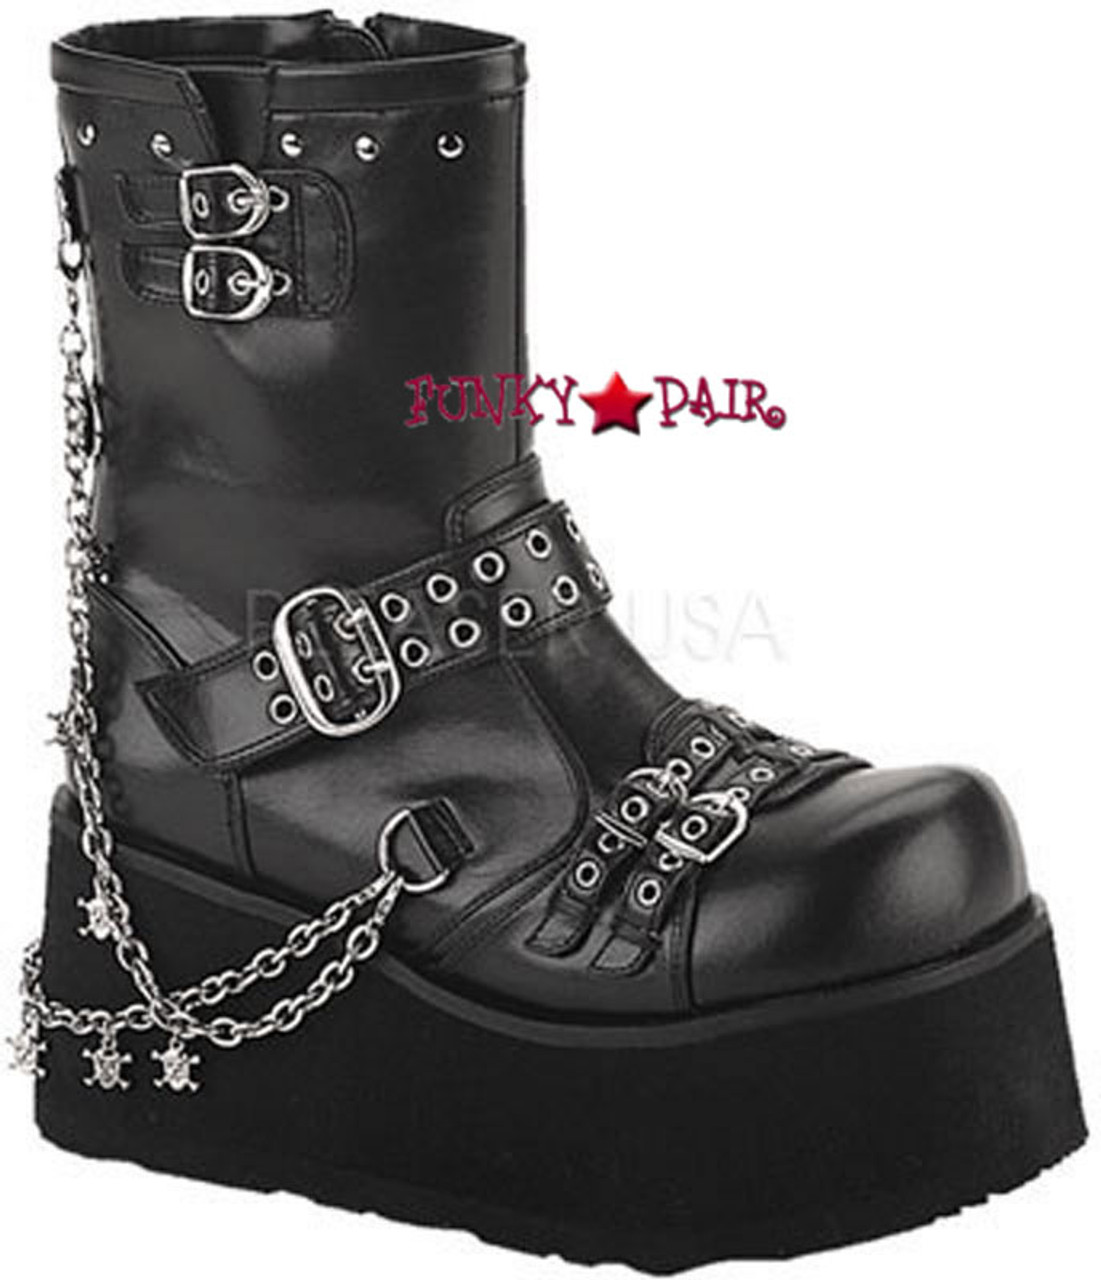 Goth Platform Boots with Chain